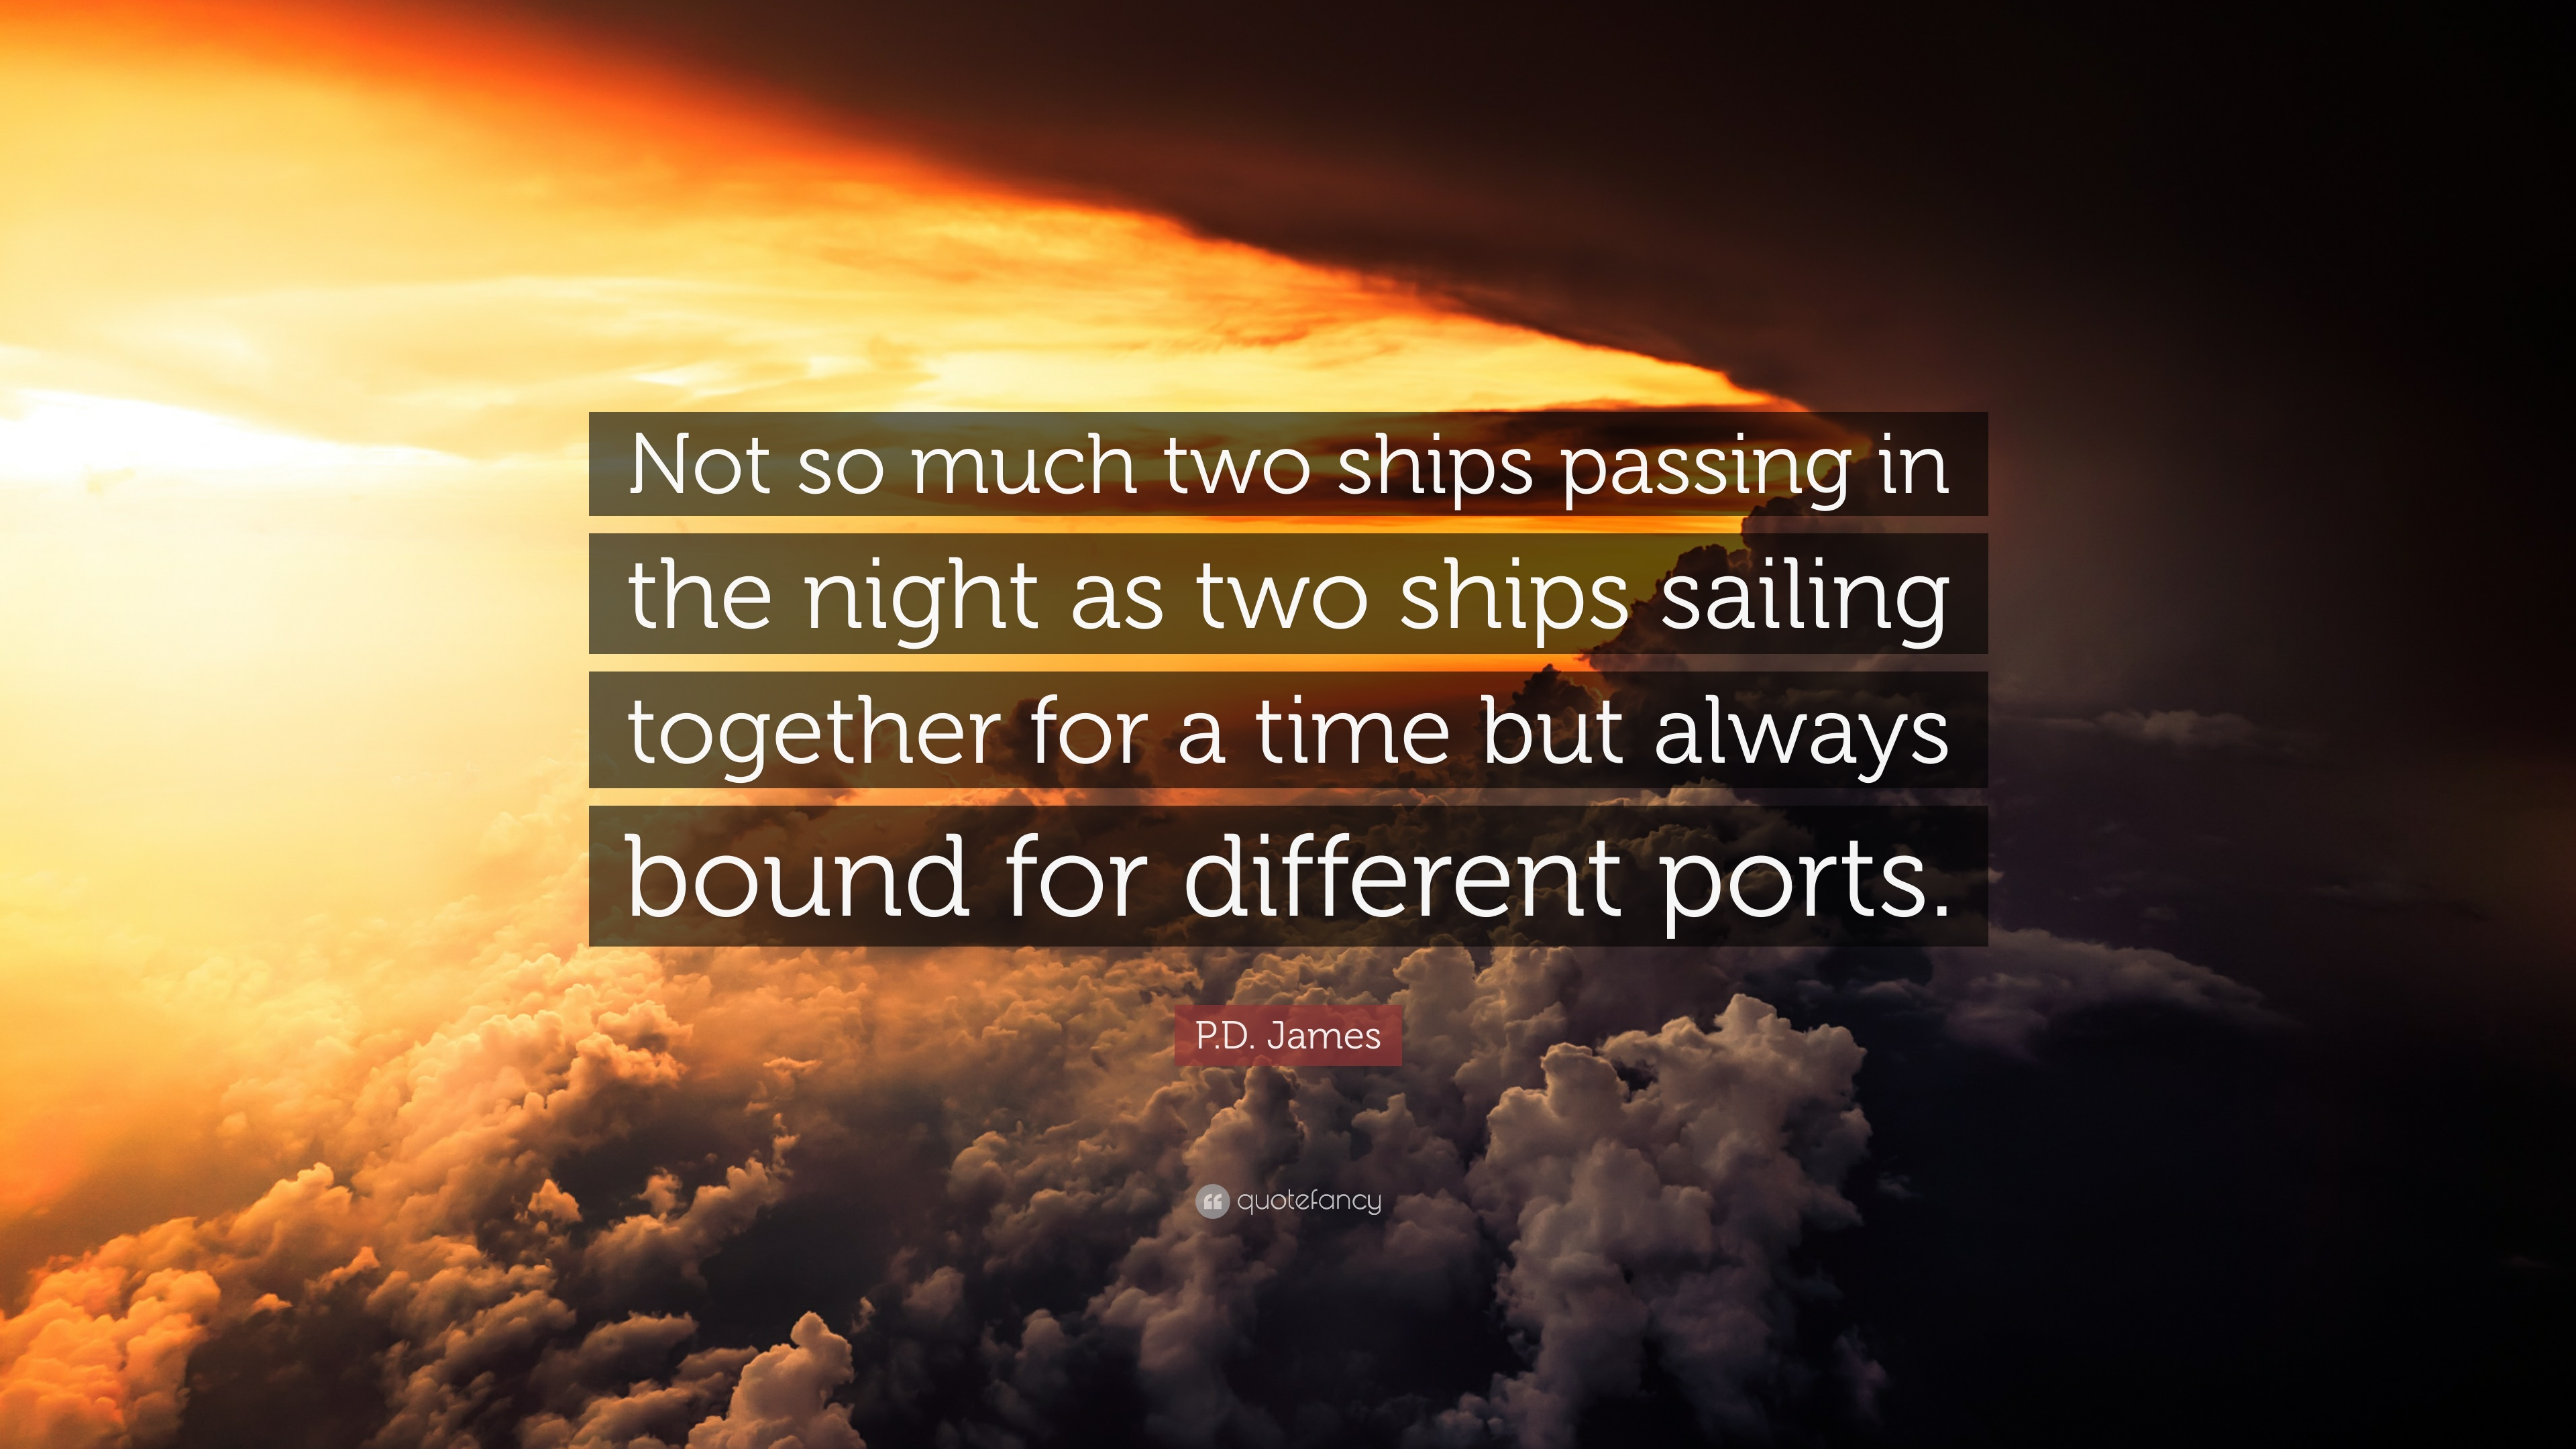 1935558-P-D-James-Quote-Not-so-much-two-ships-passing-in-the-night-as-two.jpg